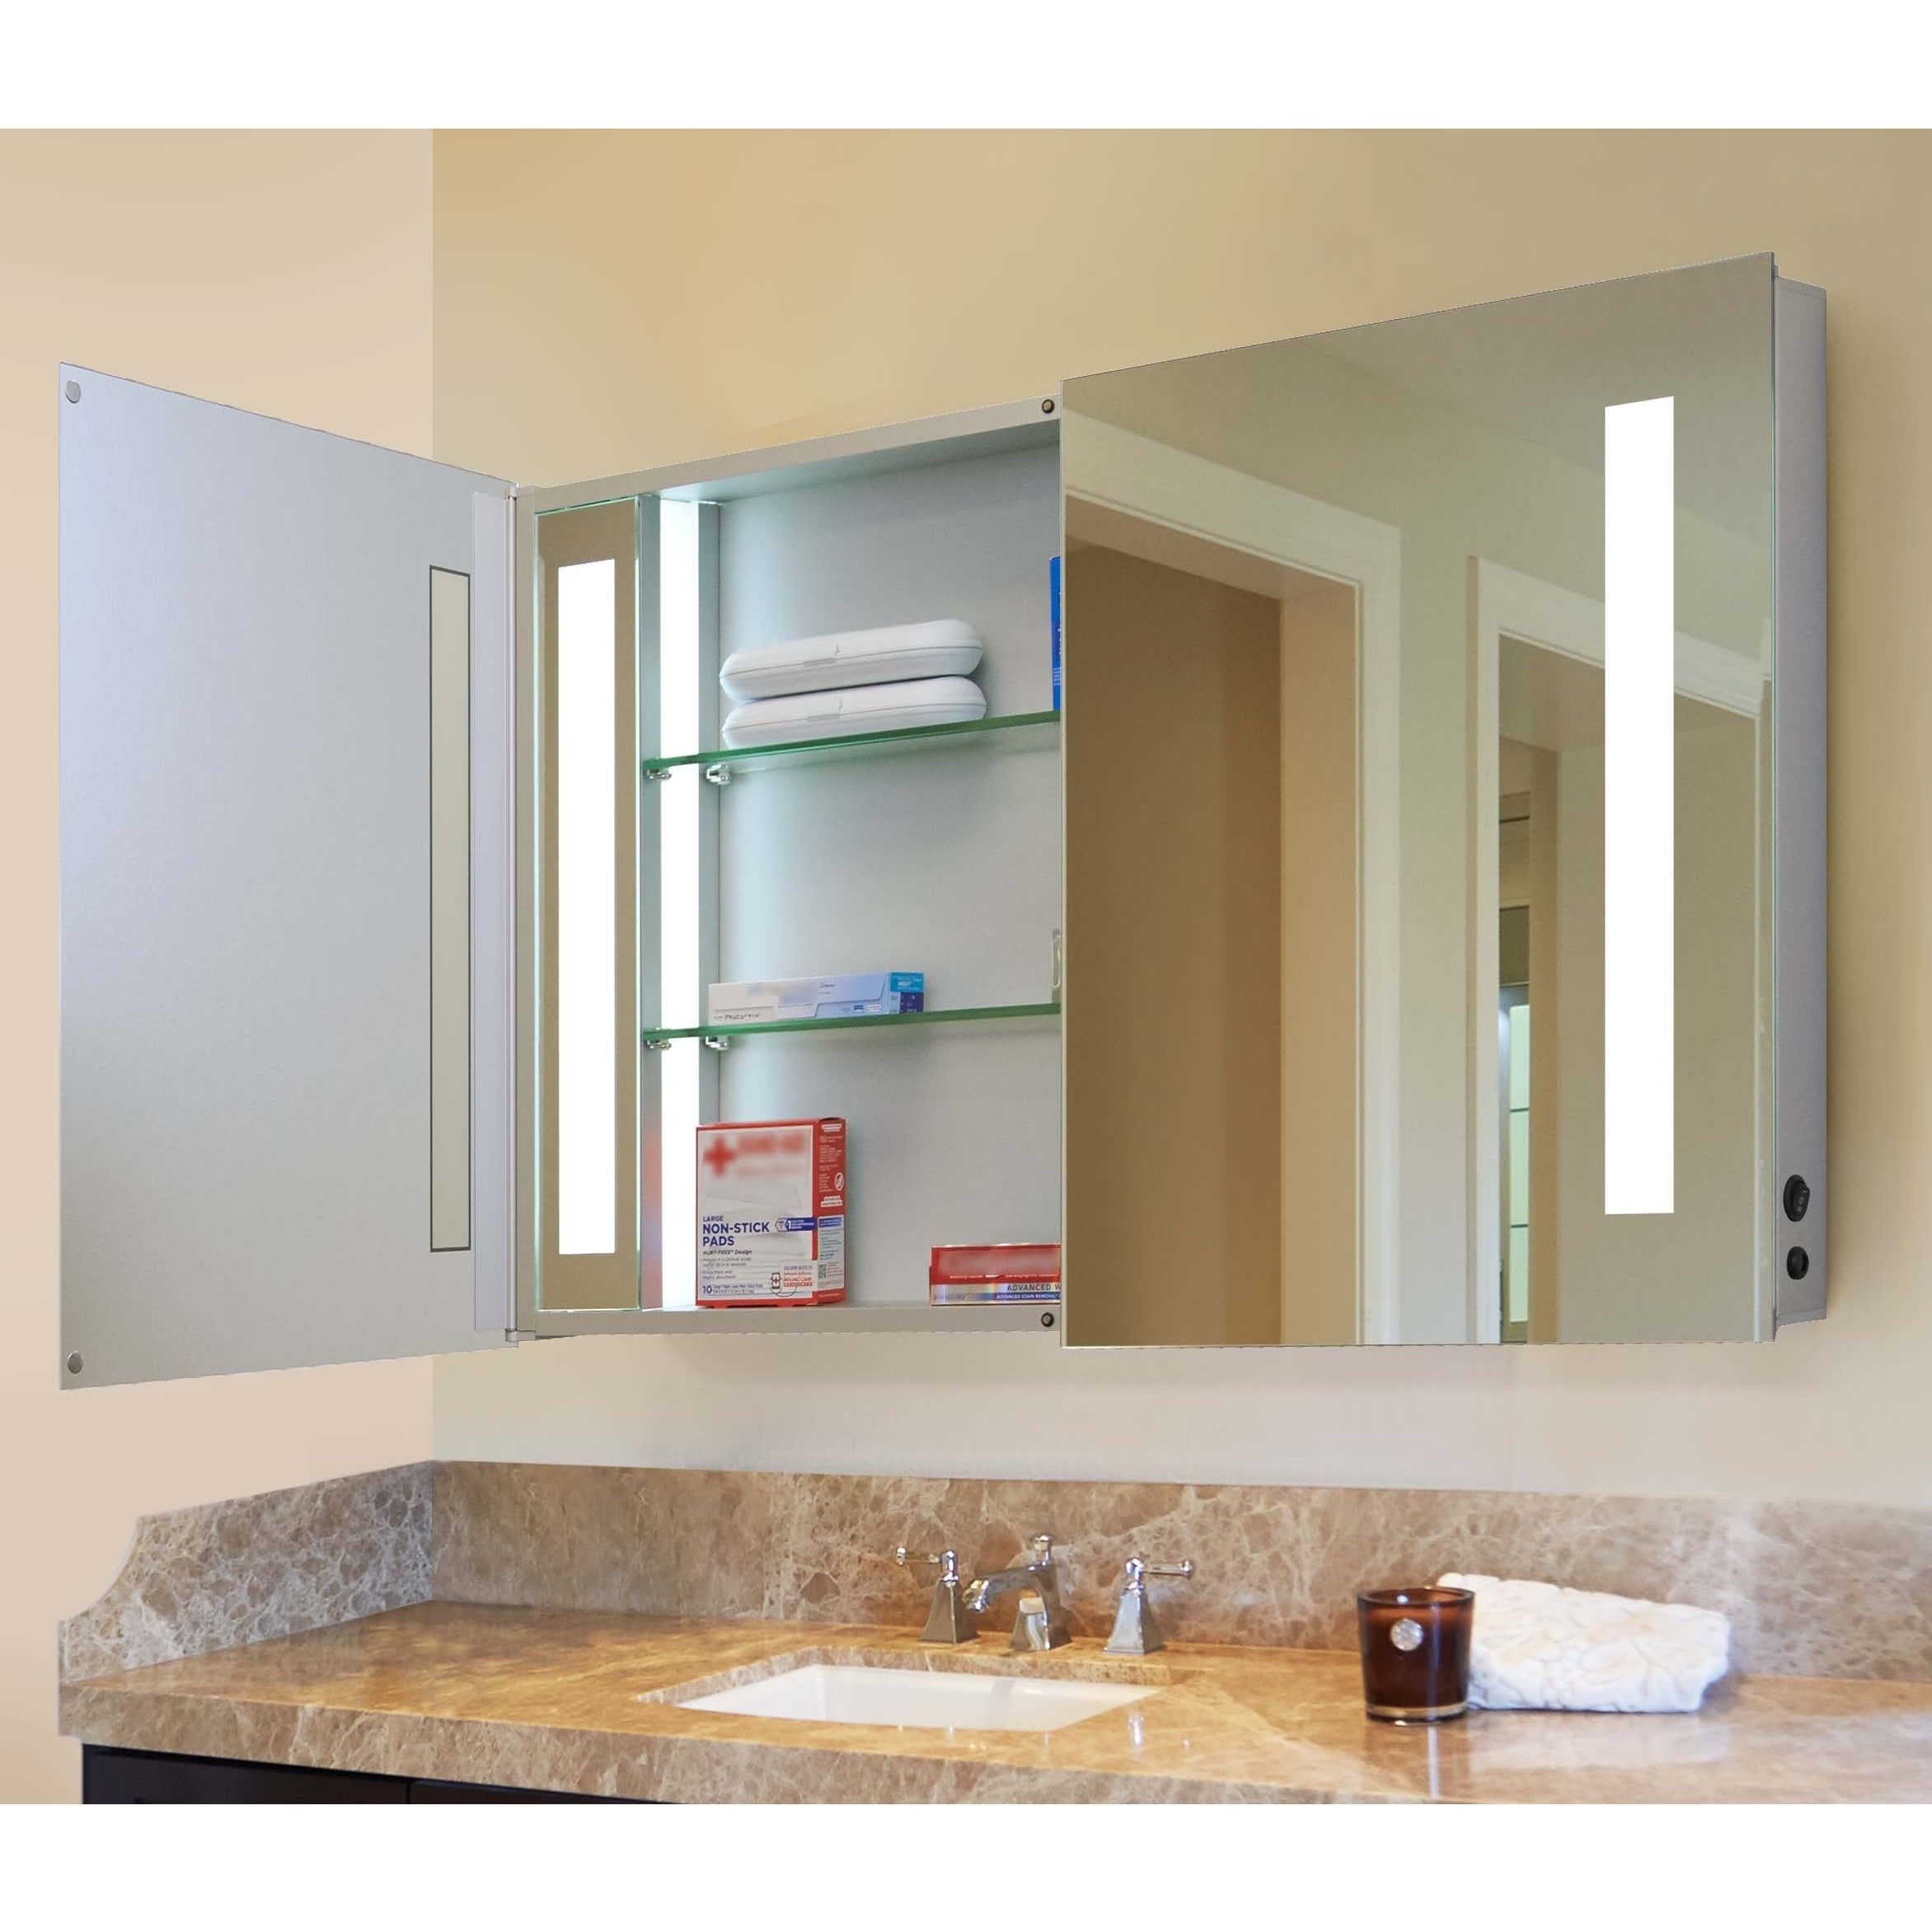 Innoci Usa Zeus Led Double Door Wall Mount Mirrored Lighted Medicine Cabinet Vanity Featuring Ir Sensor Tempered Glass Shelves Overstock 11417167 Lighted Shelves Drawers 48 Inches Wide X 26 Inches High X 4 8 Inches Deep